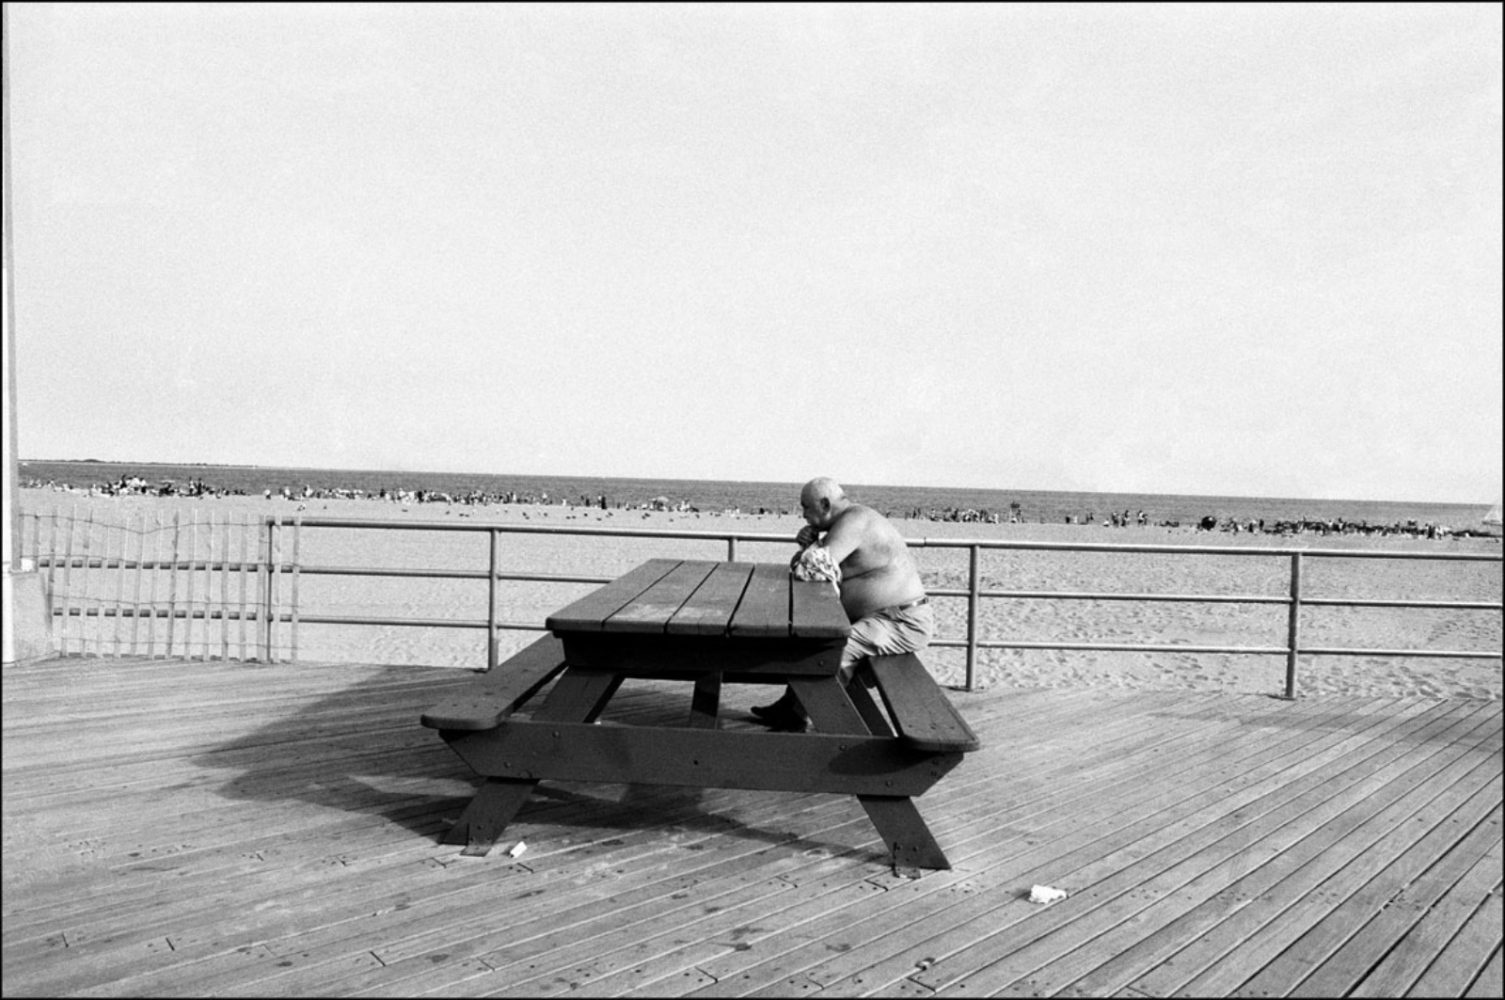 Alone at Table, Coney Island, NY, July 4, 2004